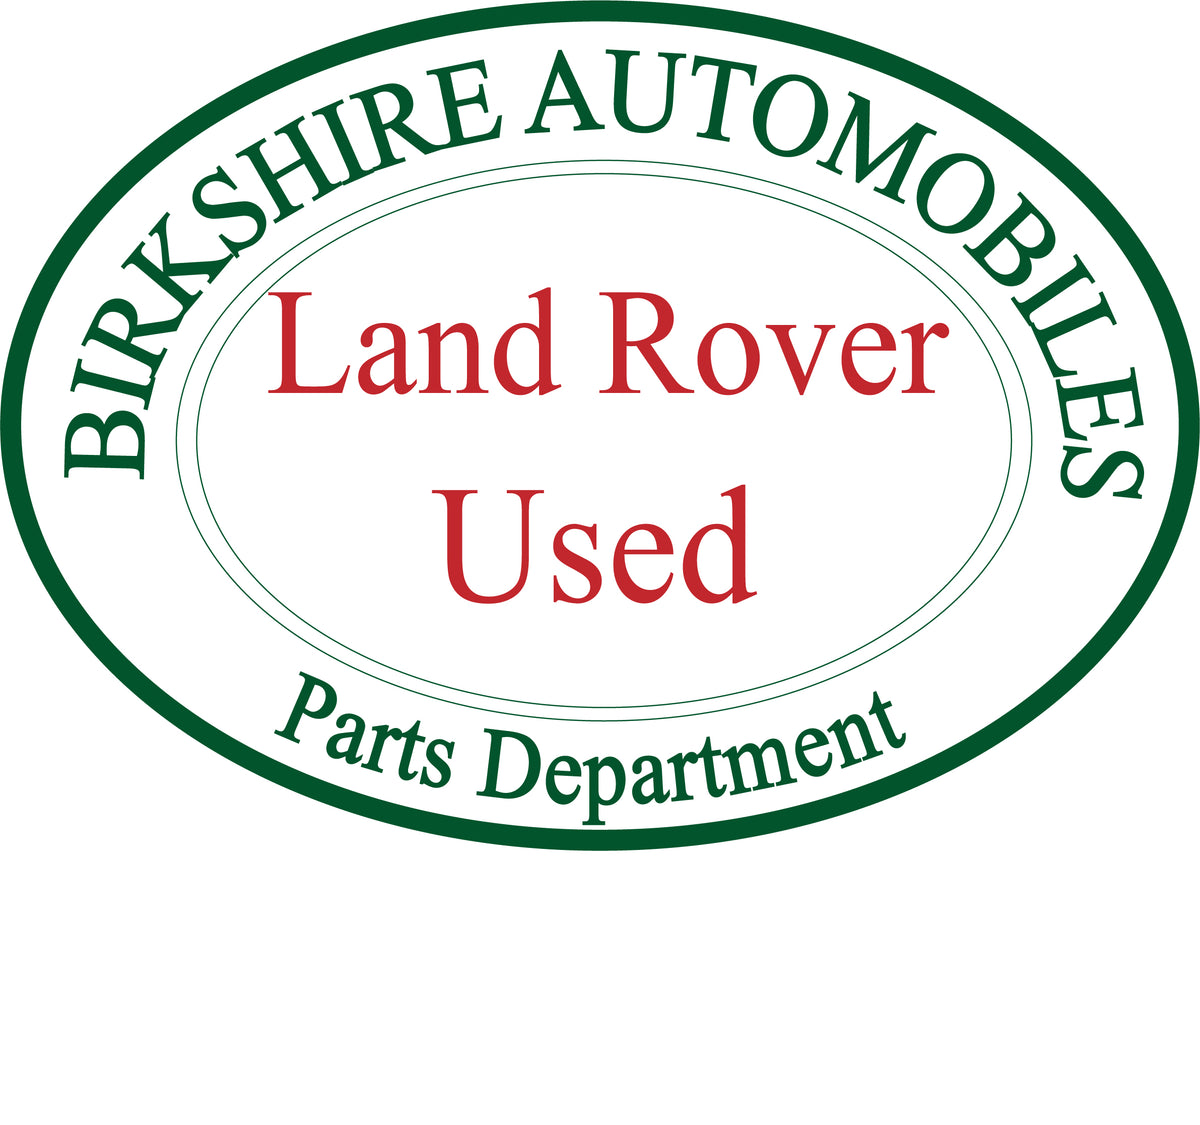 The Diagram Of 1998 Range Rover Land Used Parts Birkshire Automobiles Department